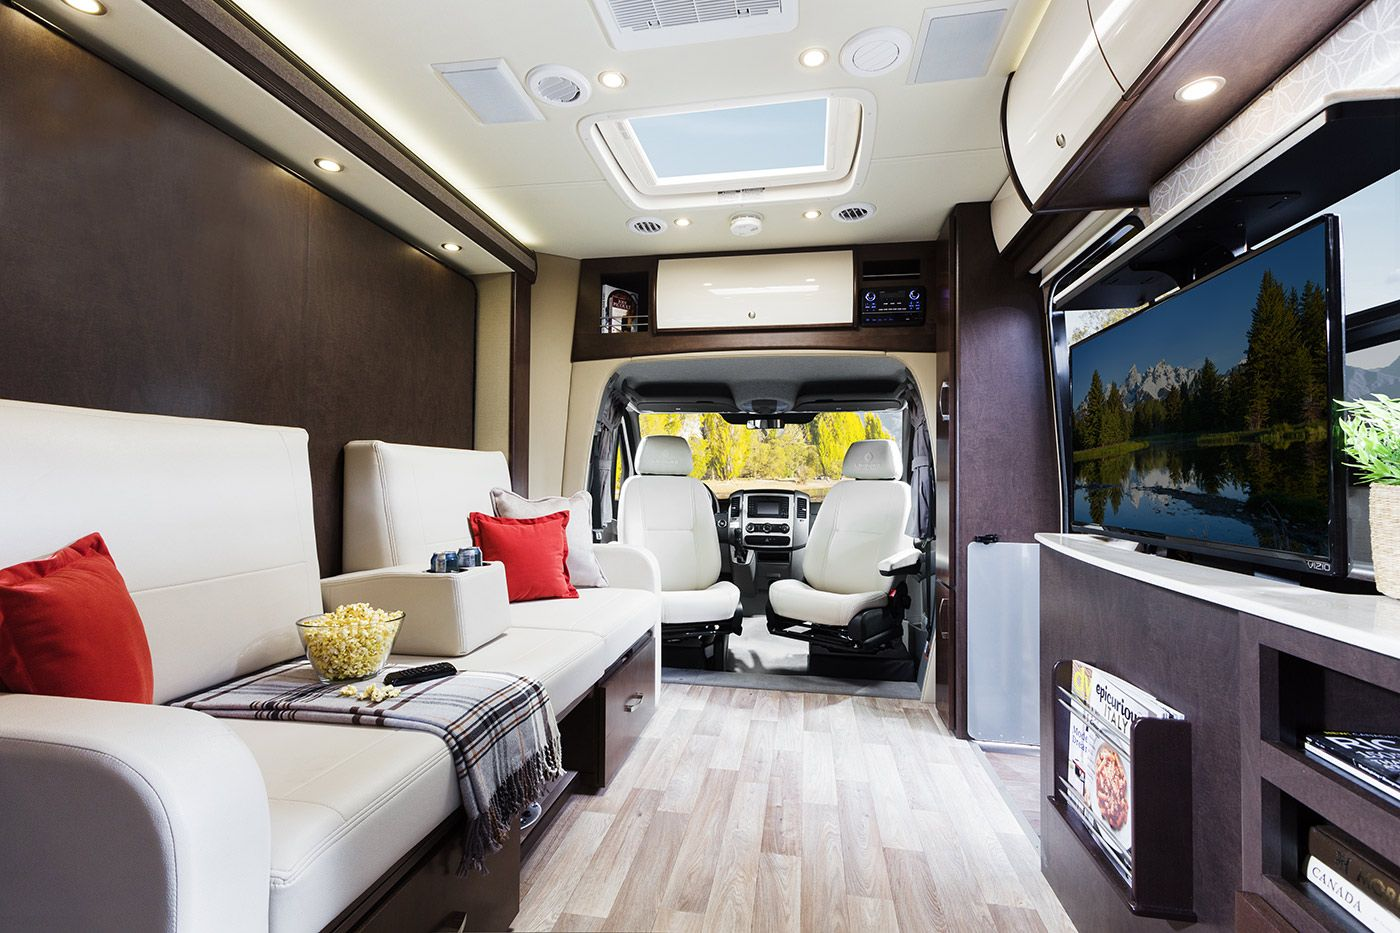 Unity Class C RV Leisure travel vans, Travel and leisure